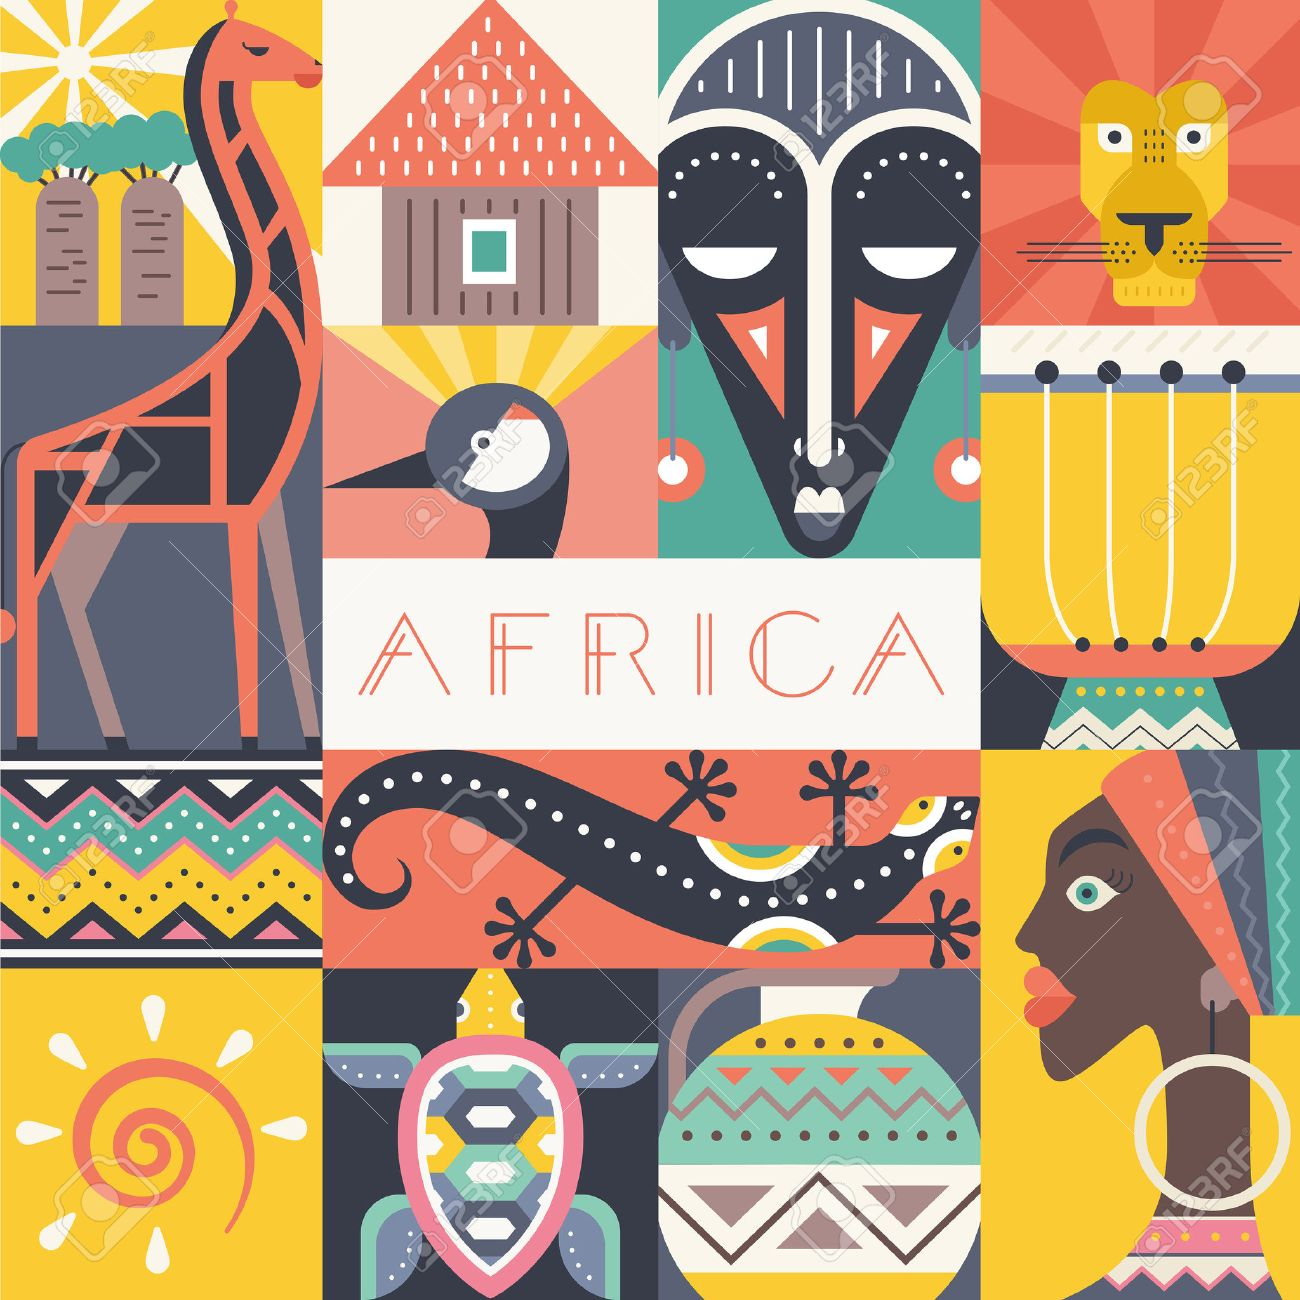 Conceptual illustration of Africa with different african symbols made in flat vector style. Travel to africa banner template. Explore the world. Traditional african symbols isolated and easy to use. African design. - 54822379